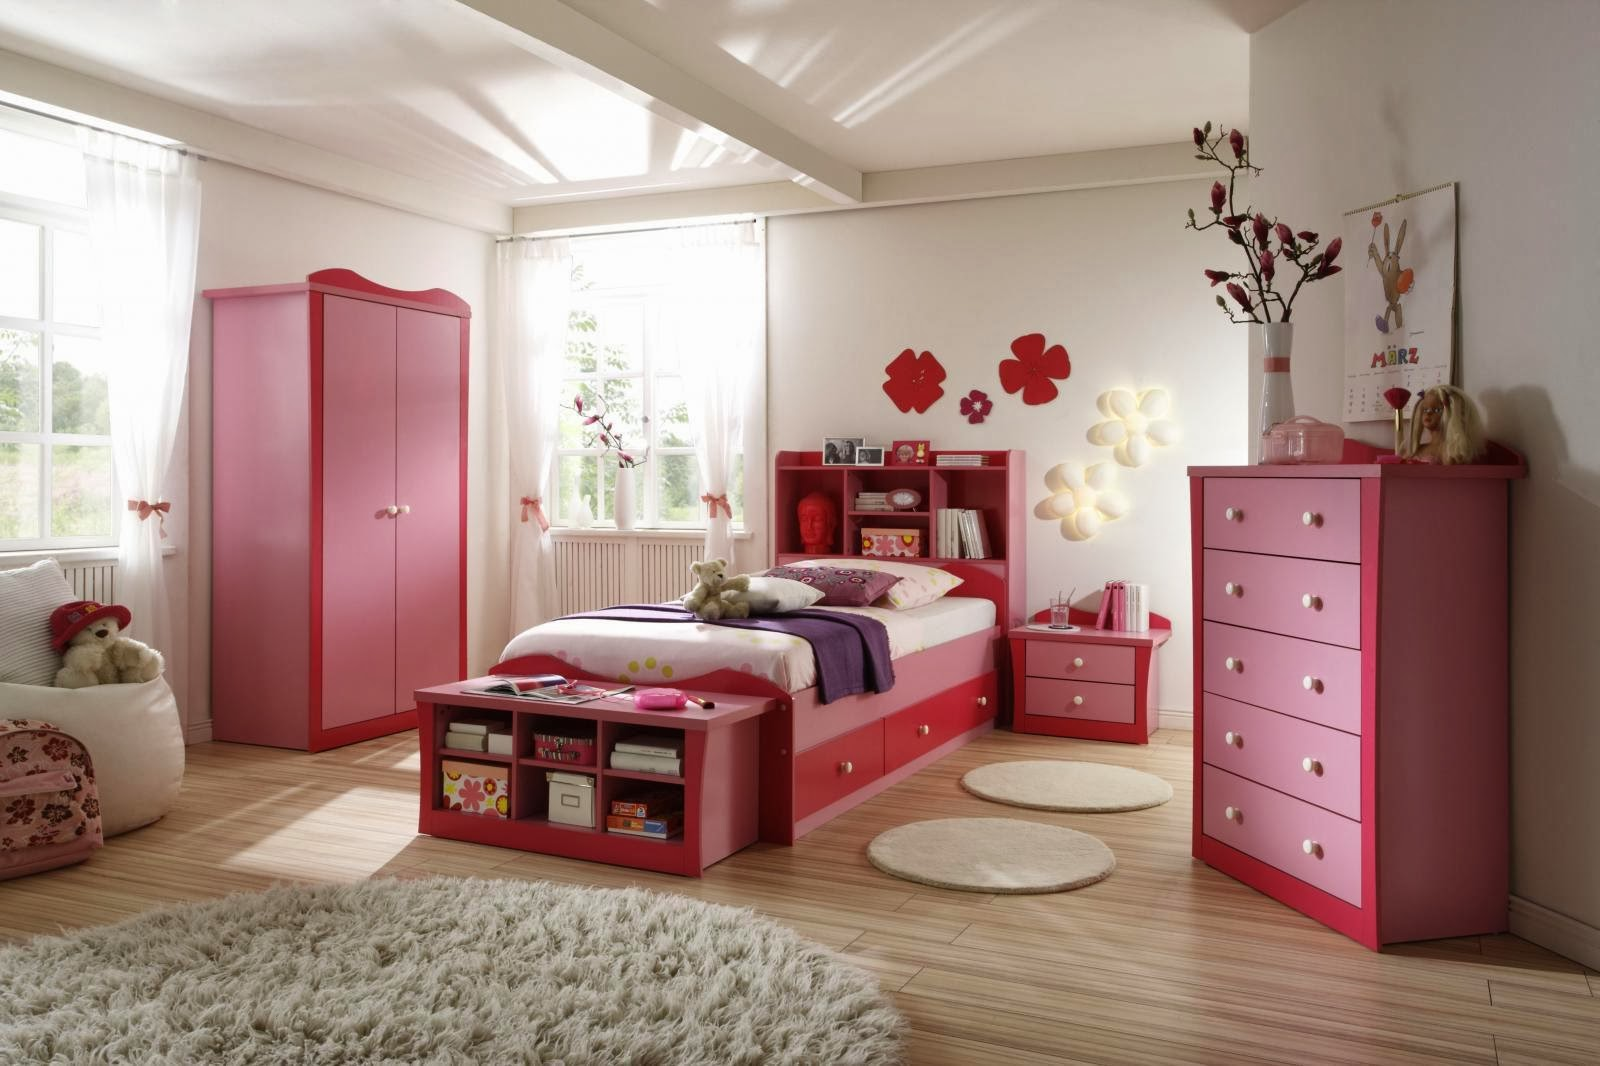 Home Decorating Interior Design Ideas: Pink Bedding for a ... on Small Bedroom Ideas For Women  id=21811